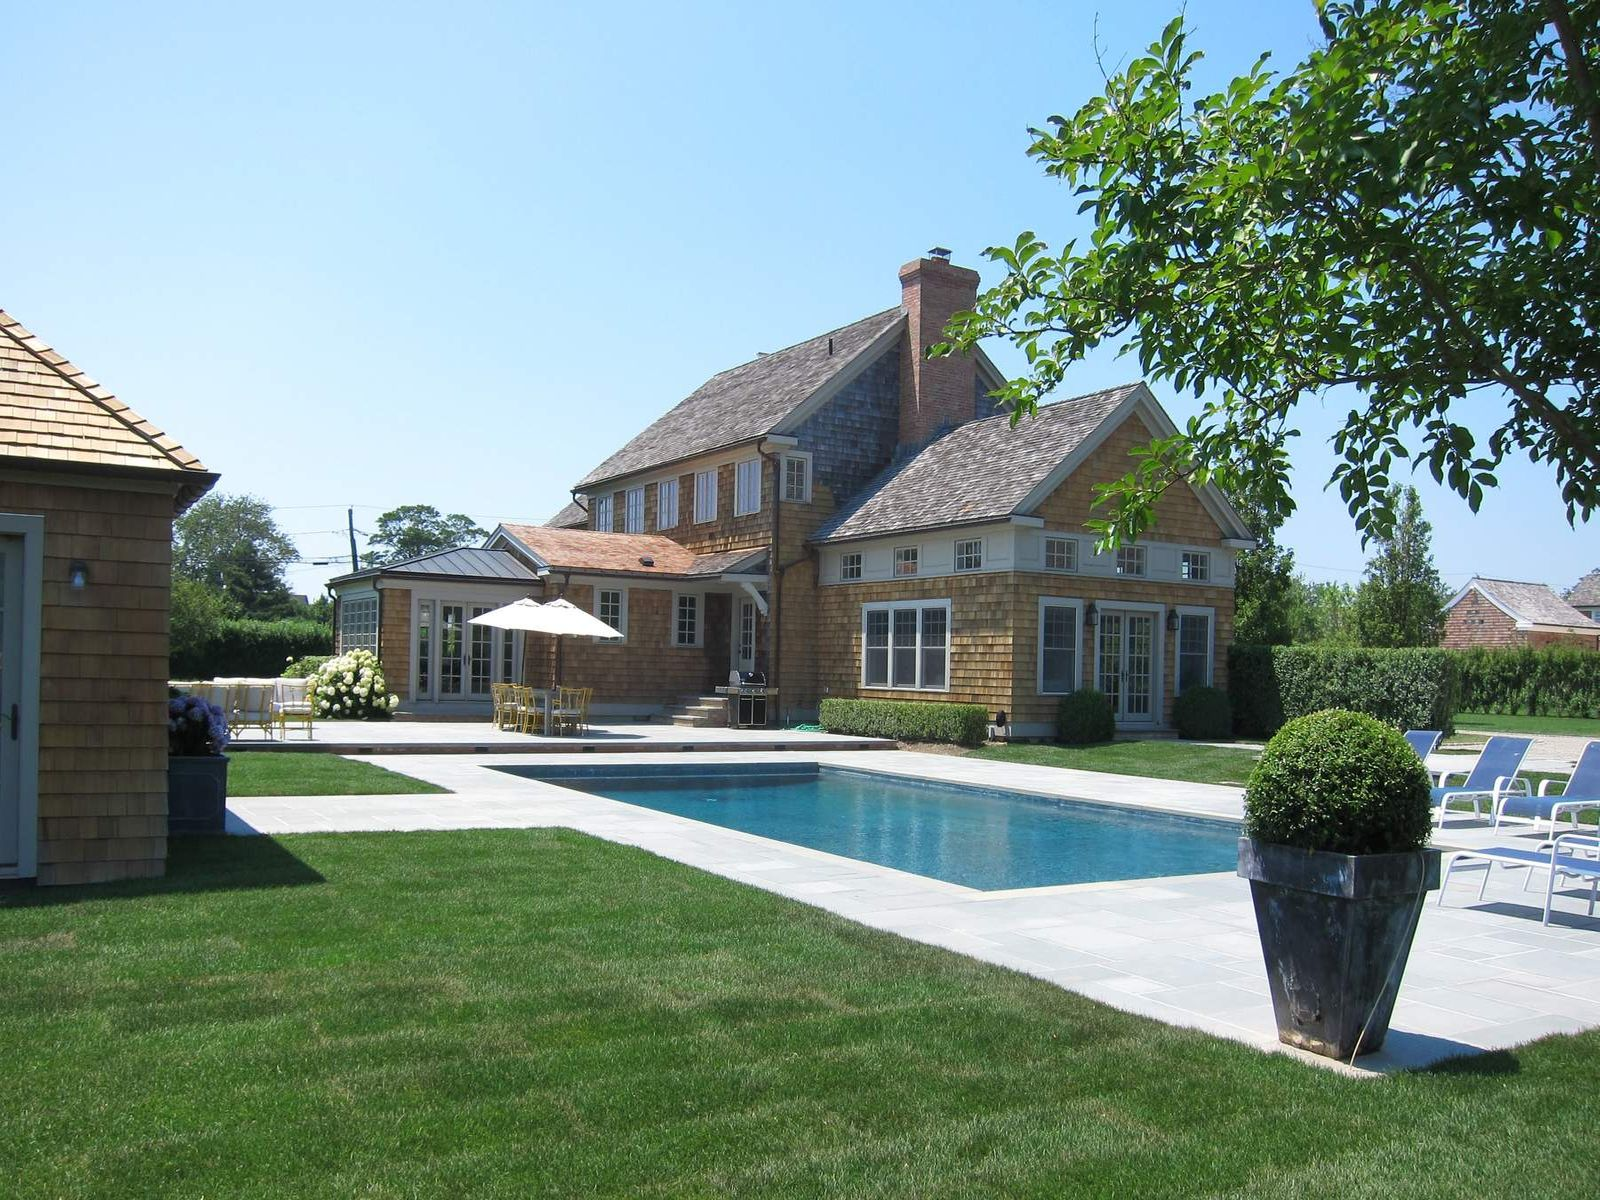 A Chic and Spacious Home, Bridgehampton NY Single Family Home - Hamptons Real Estate